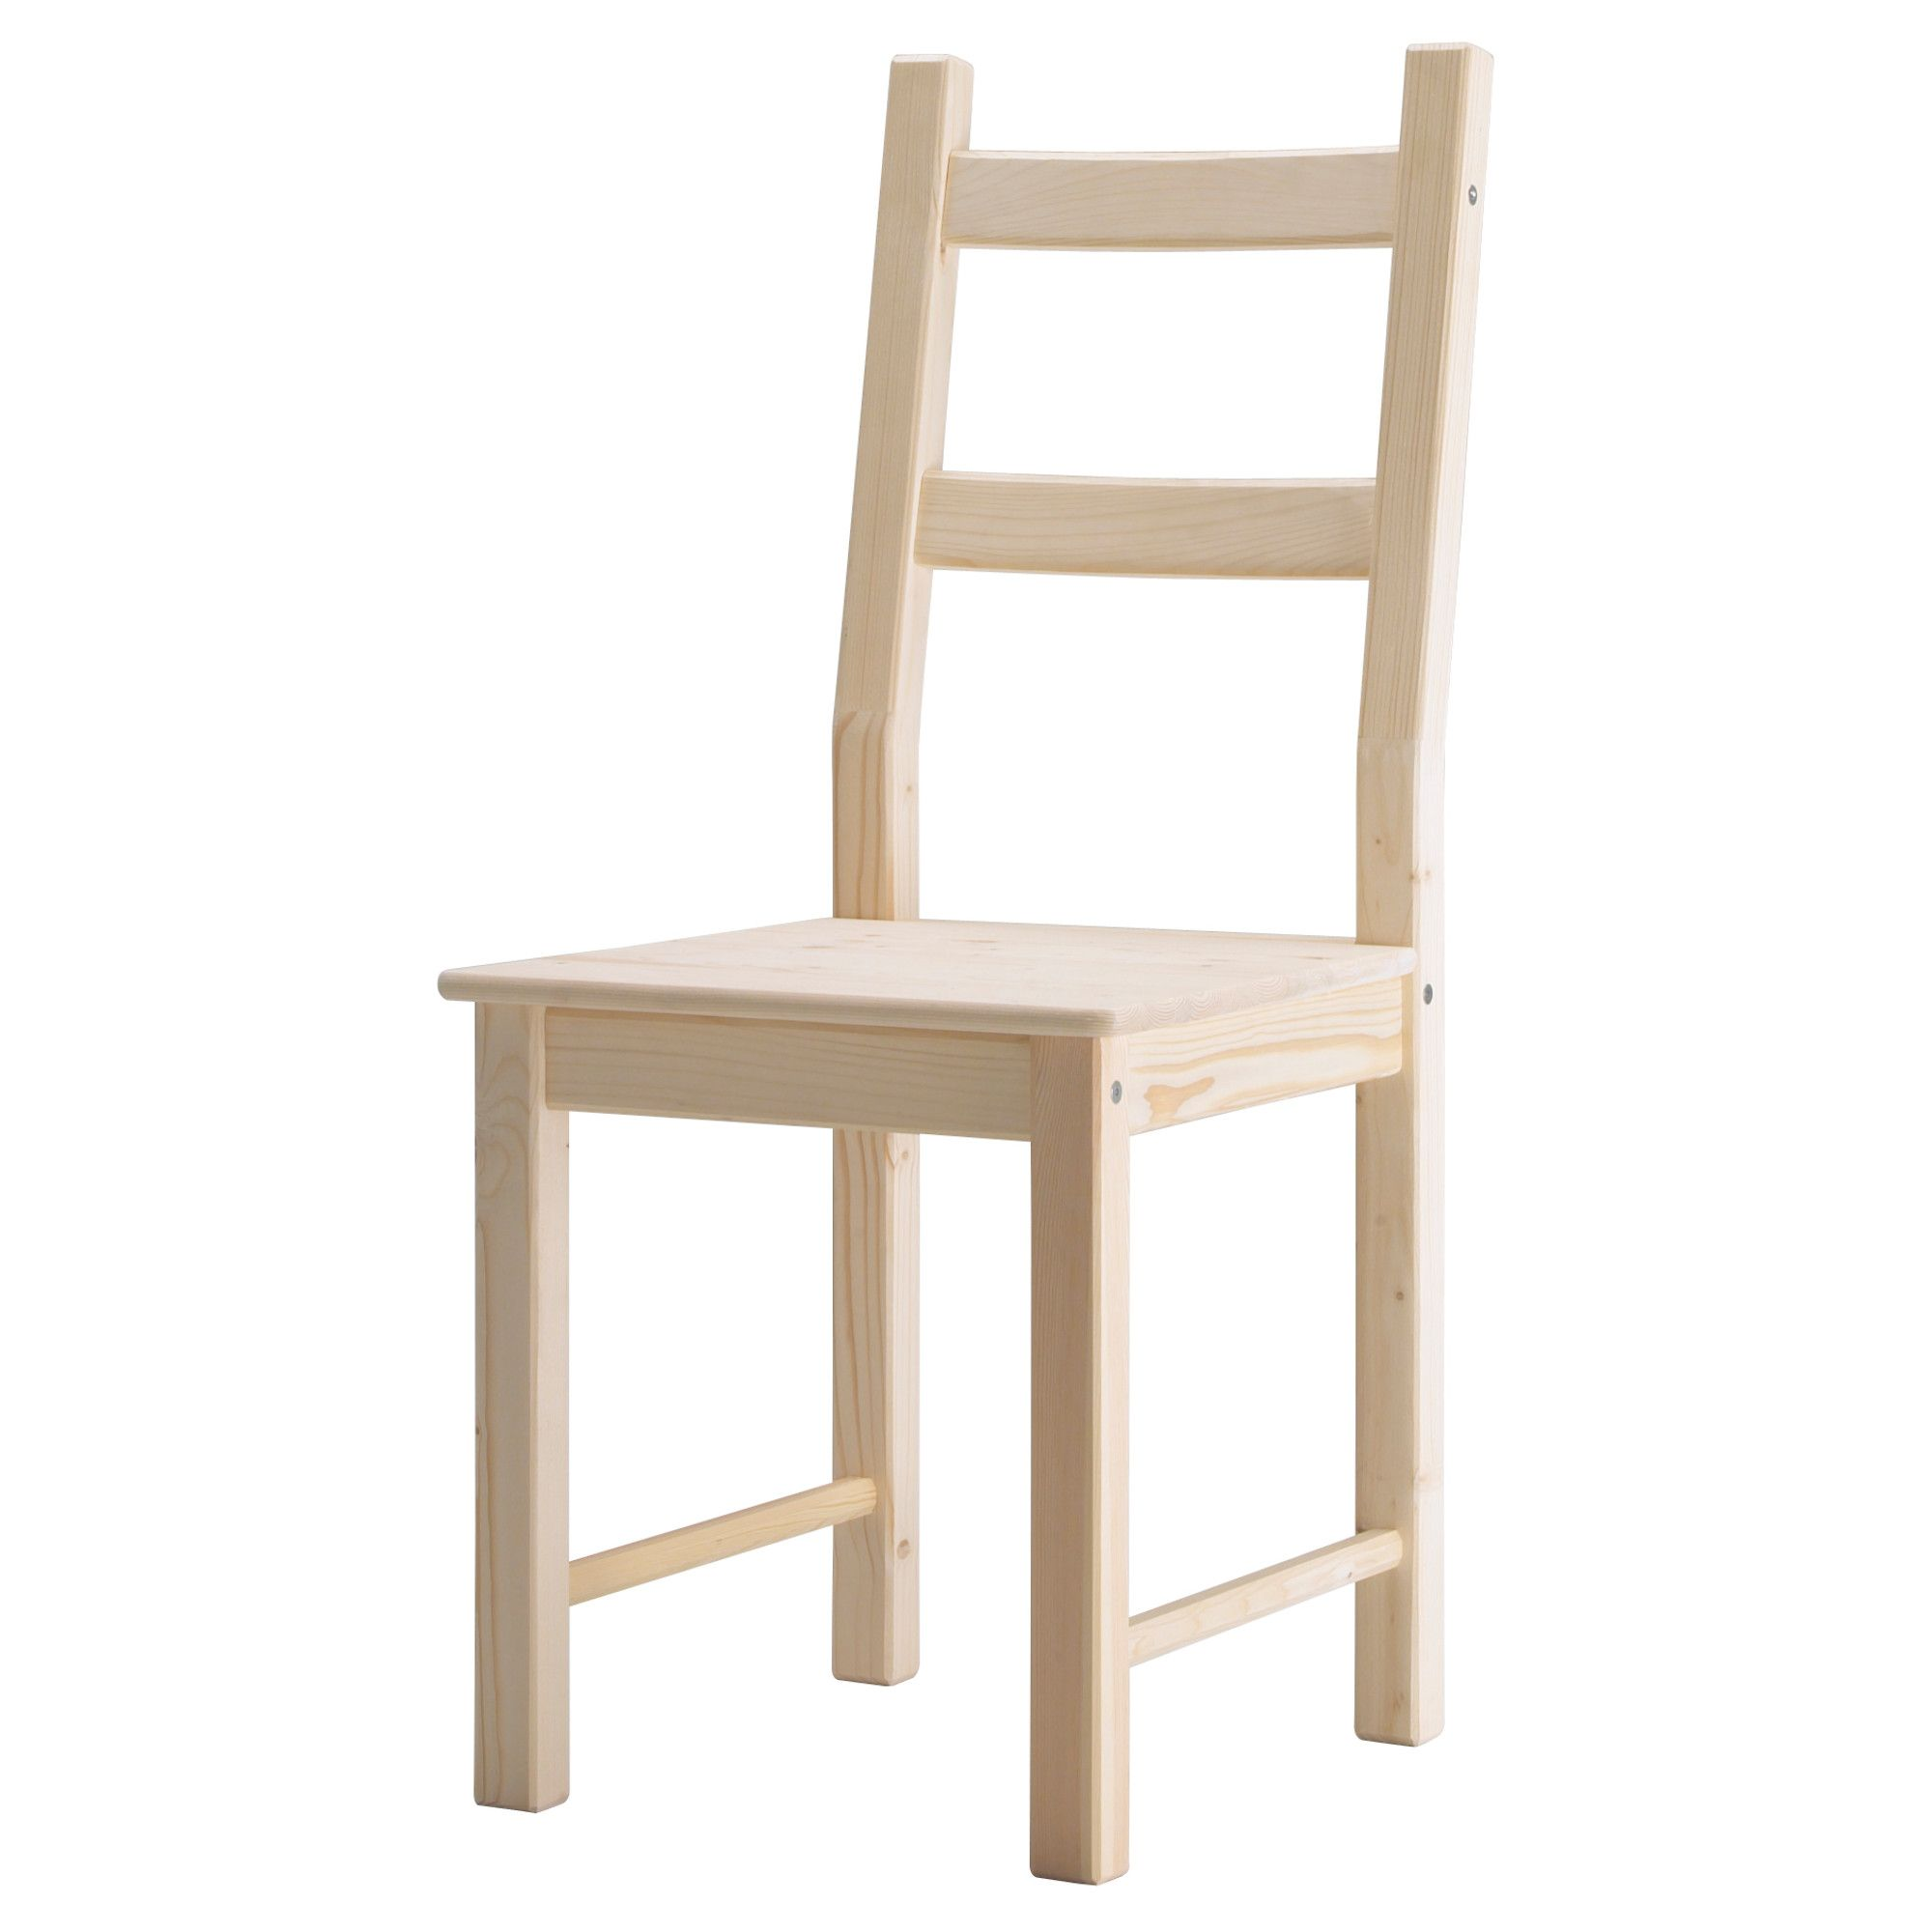 IVAR Chair - IKEA $24.99 each Available online. Need to paint to ...